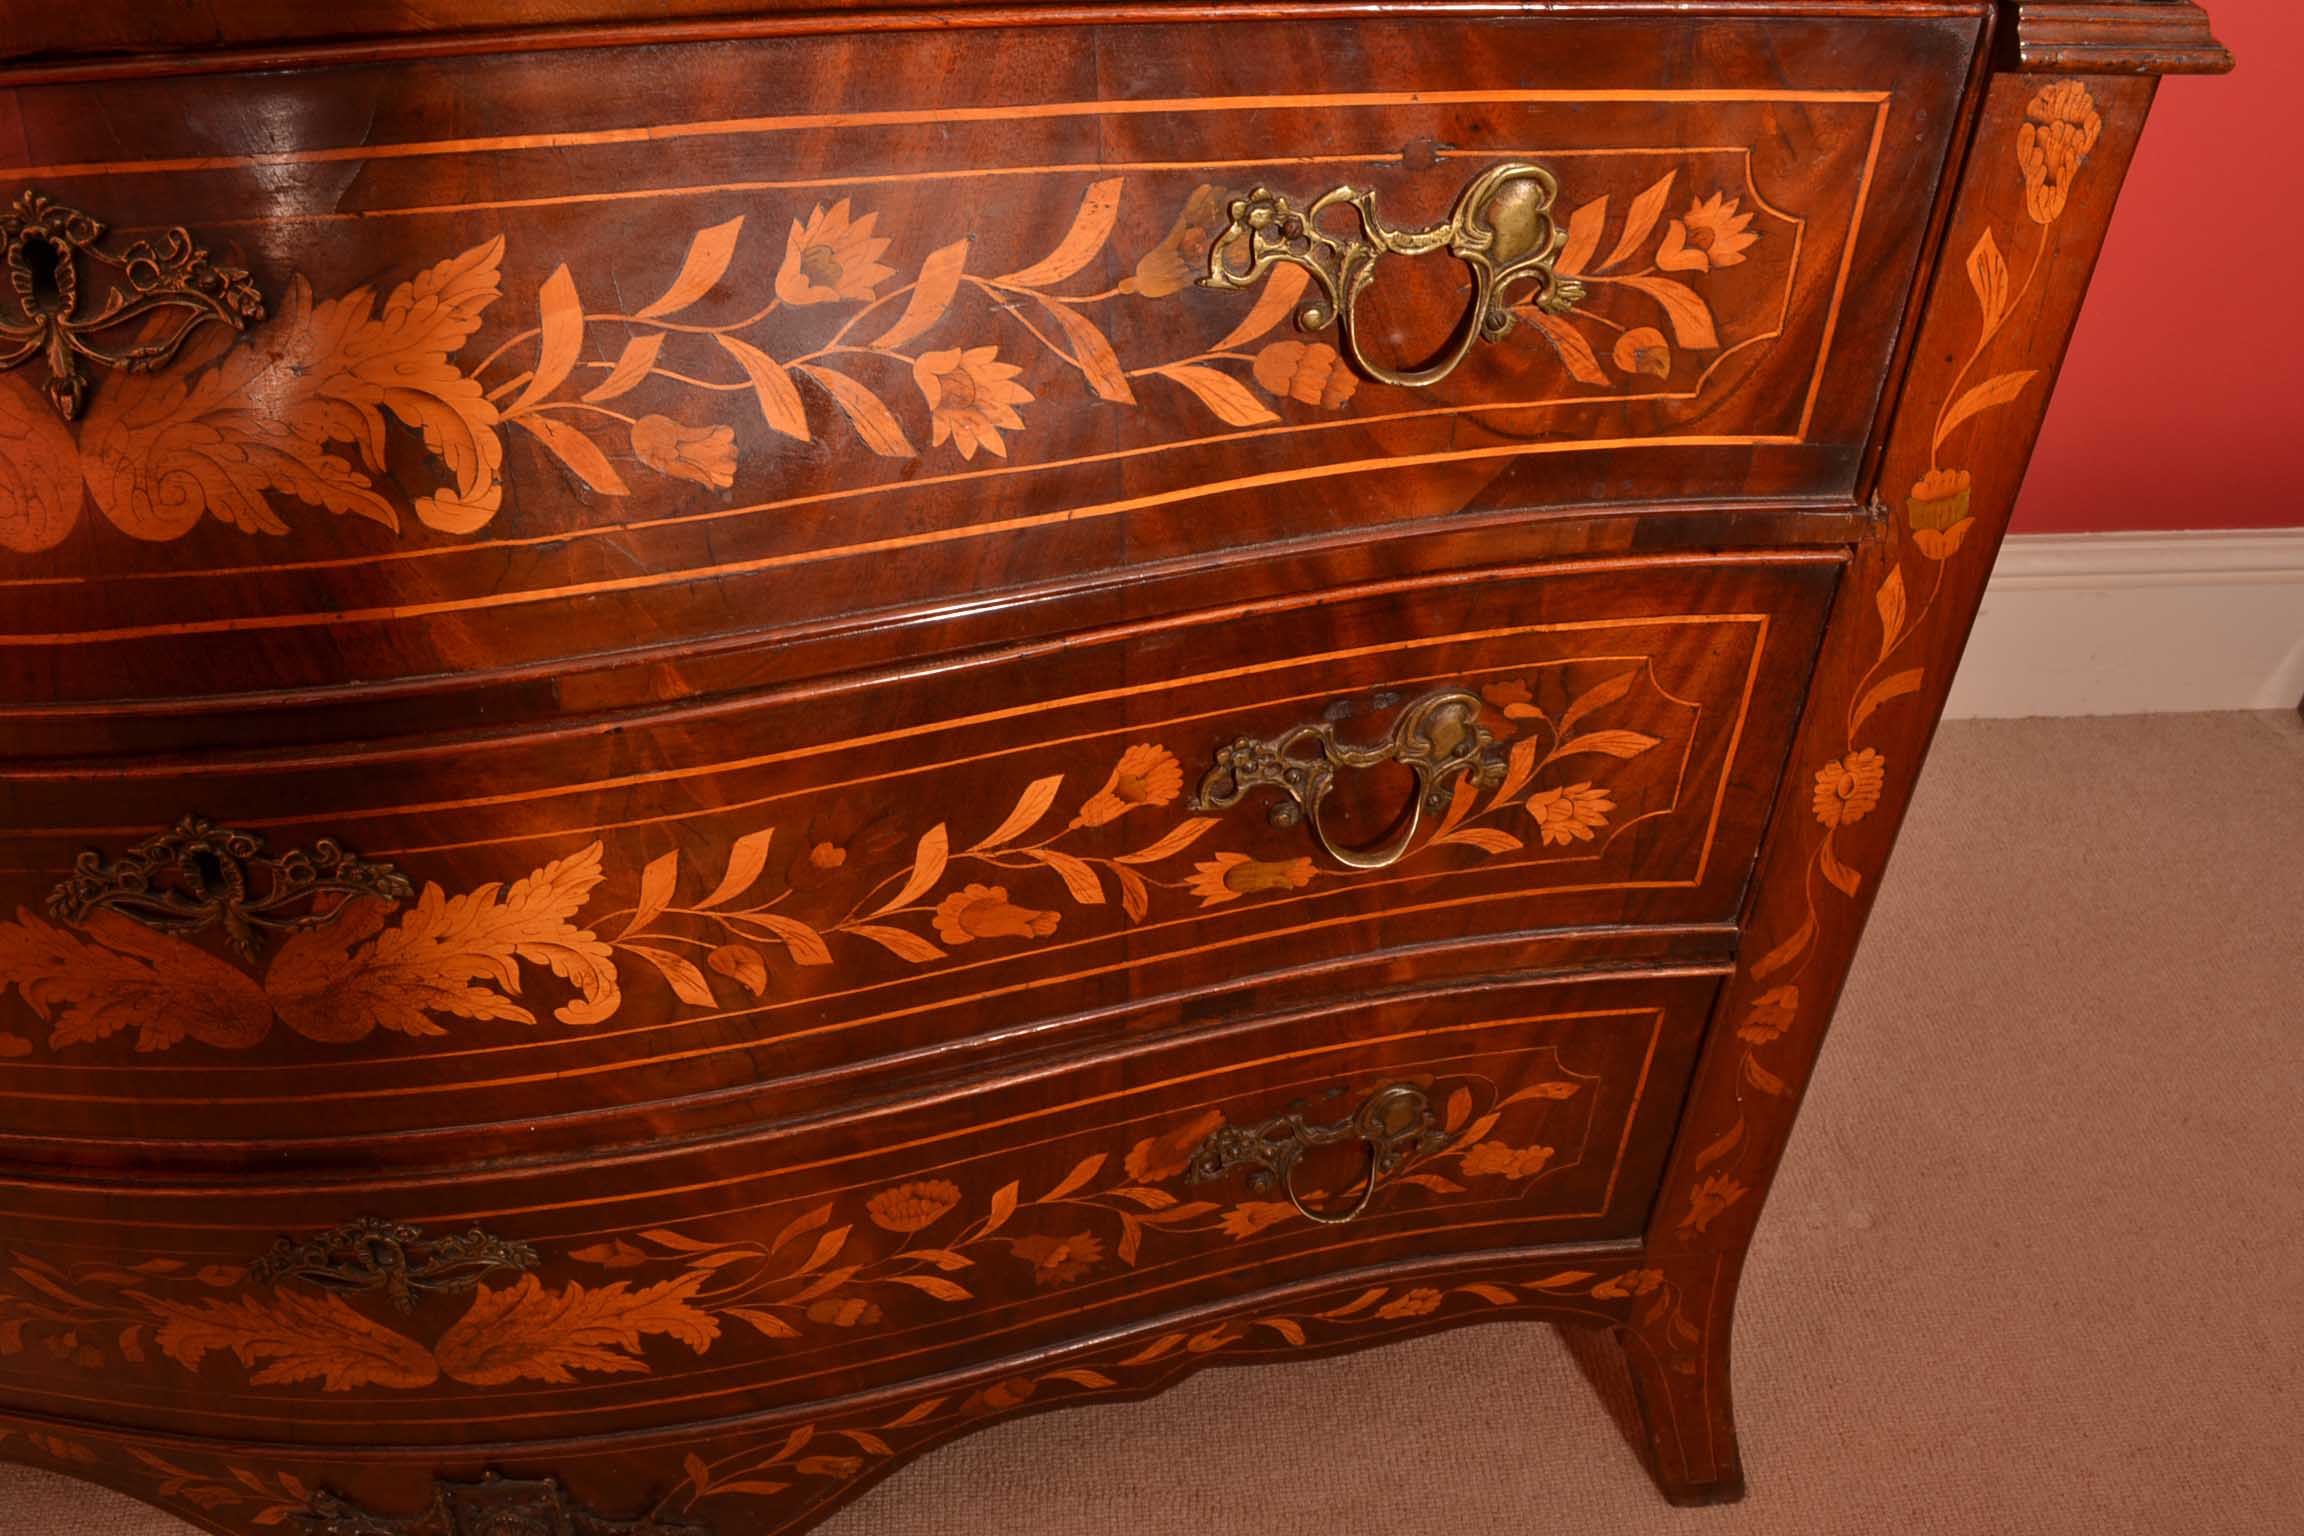 Regent antiques bureaus and secretaire chests antique dutch marquetry cyl - Bureau secretaire vintage ...